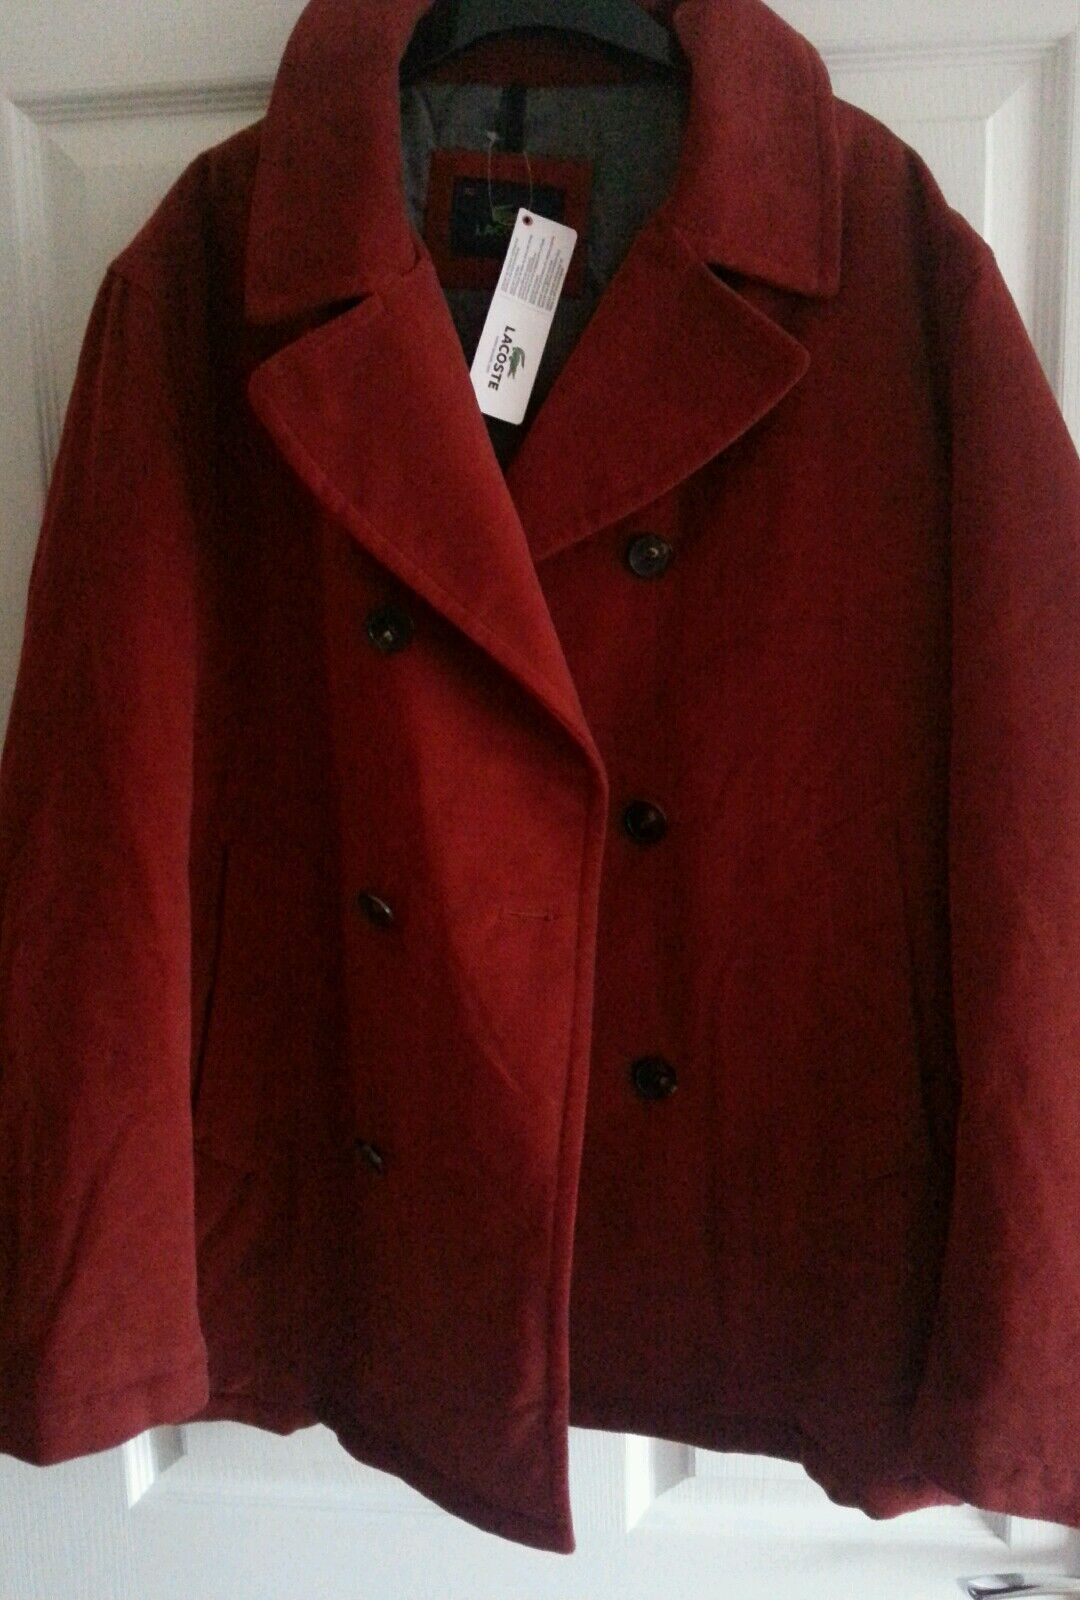 Lacoste coat Größe 52 mens, new with tag-super bargain holiday please read